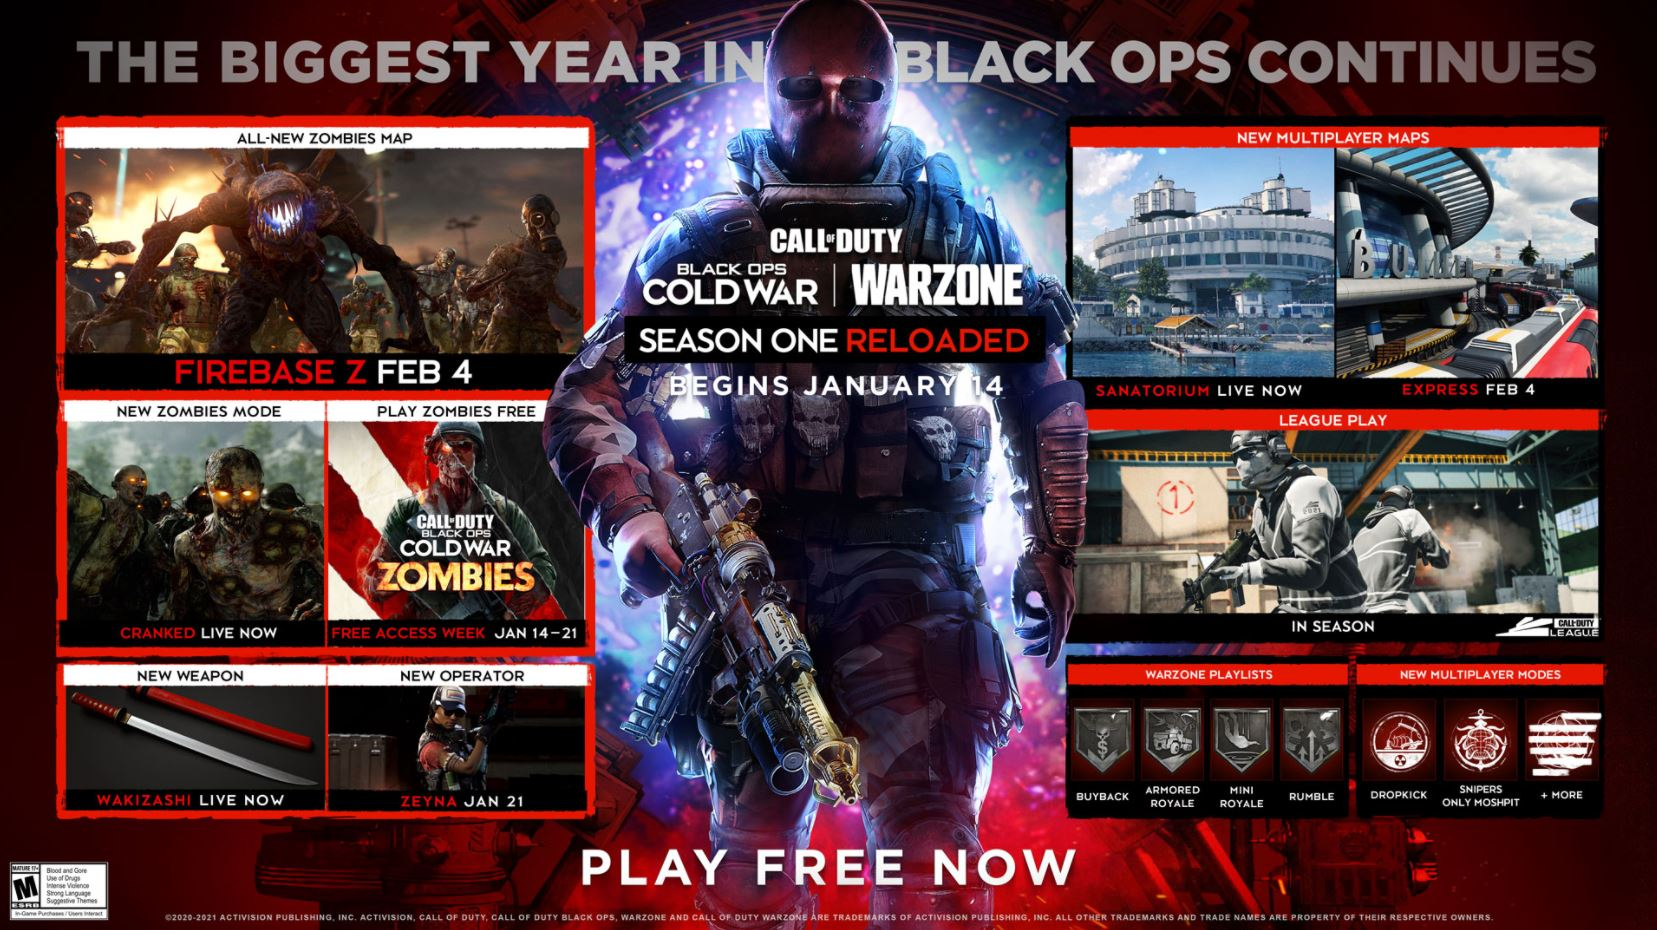 call-of-duty-black-ops-cold-war-mid-season-update-adds-new-maps-modes-operators-weapons-and-more-1